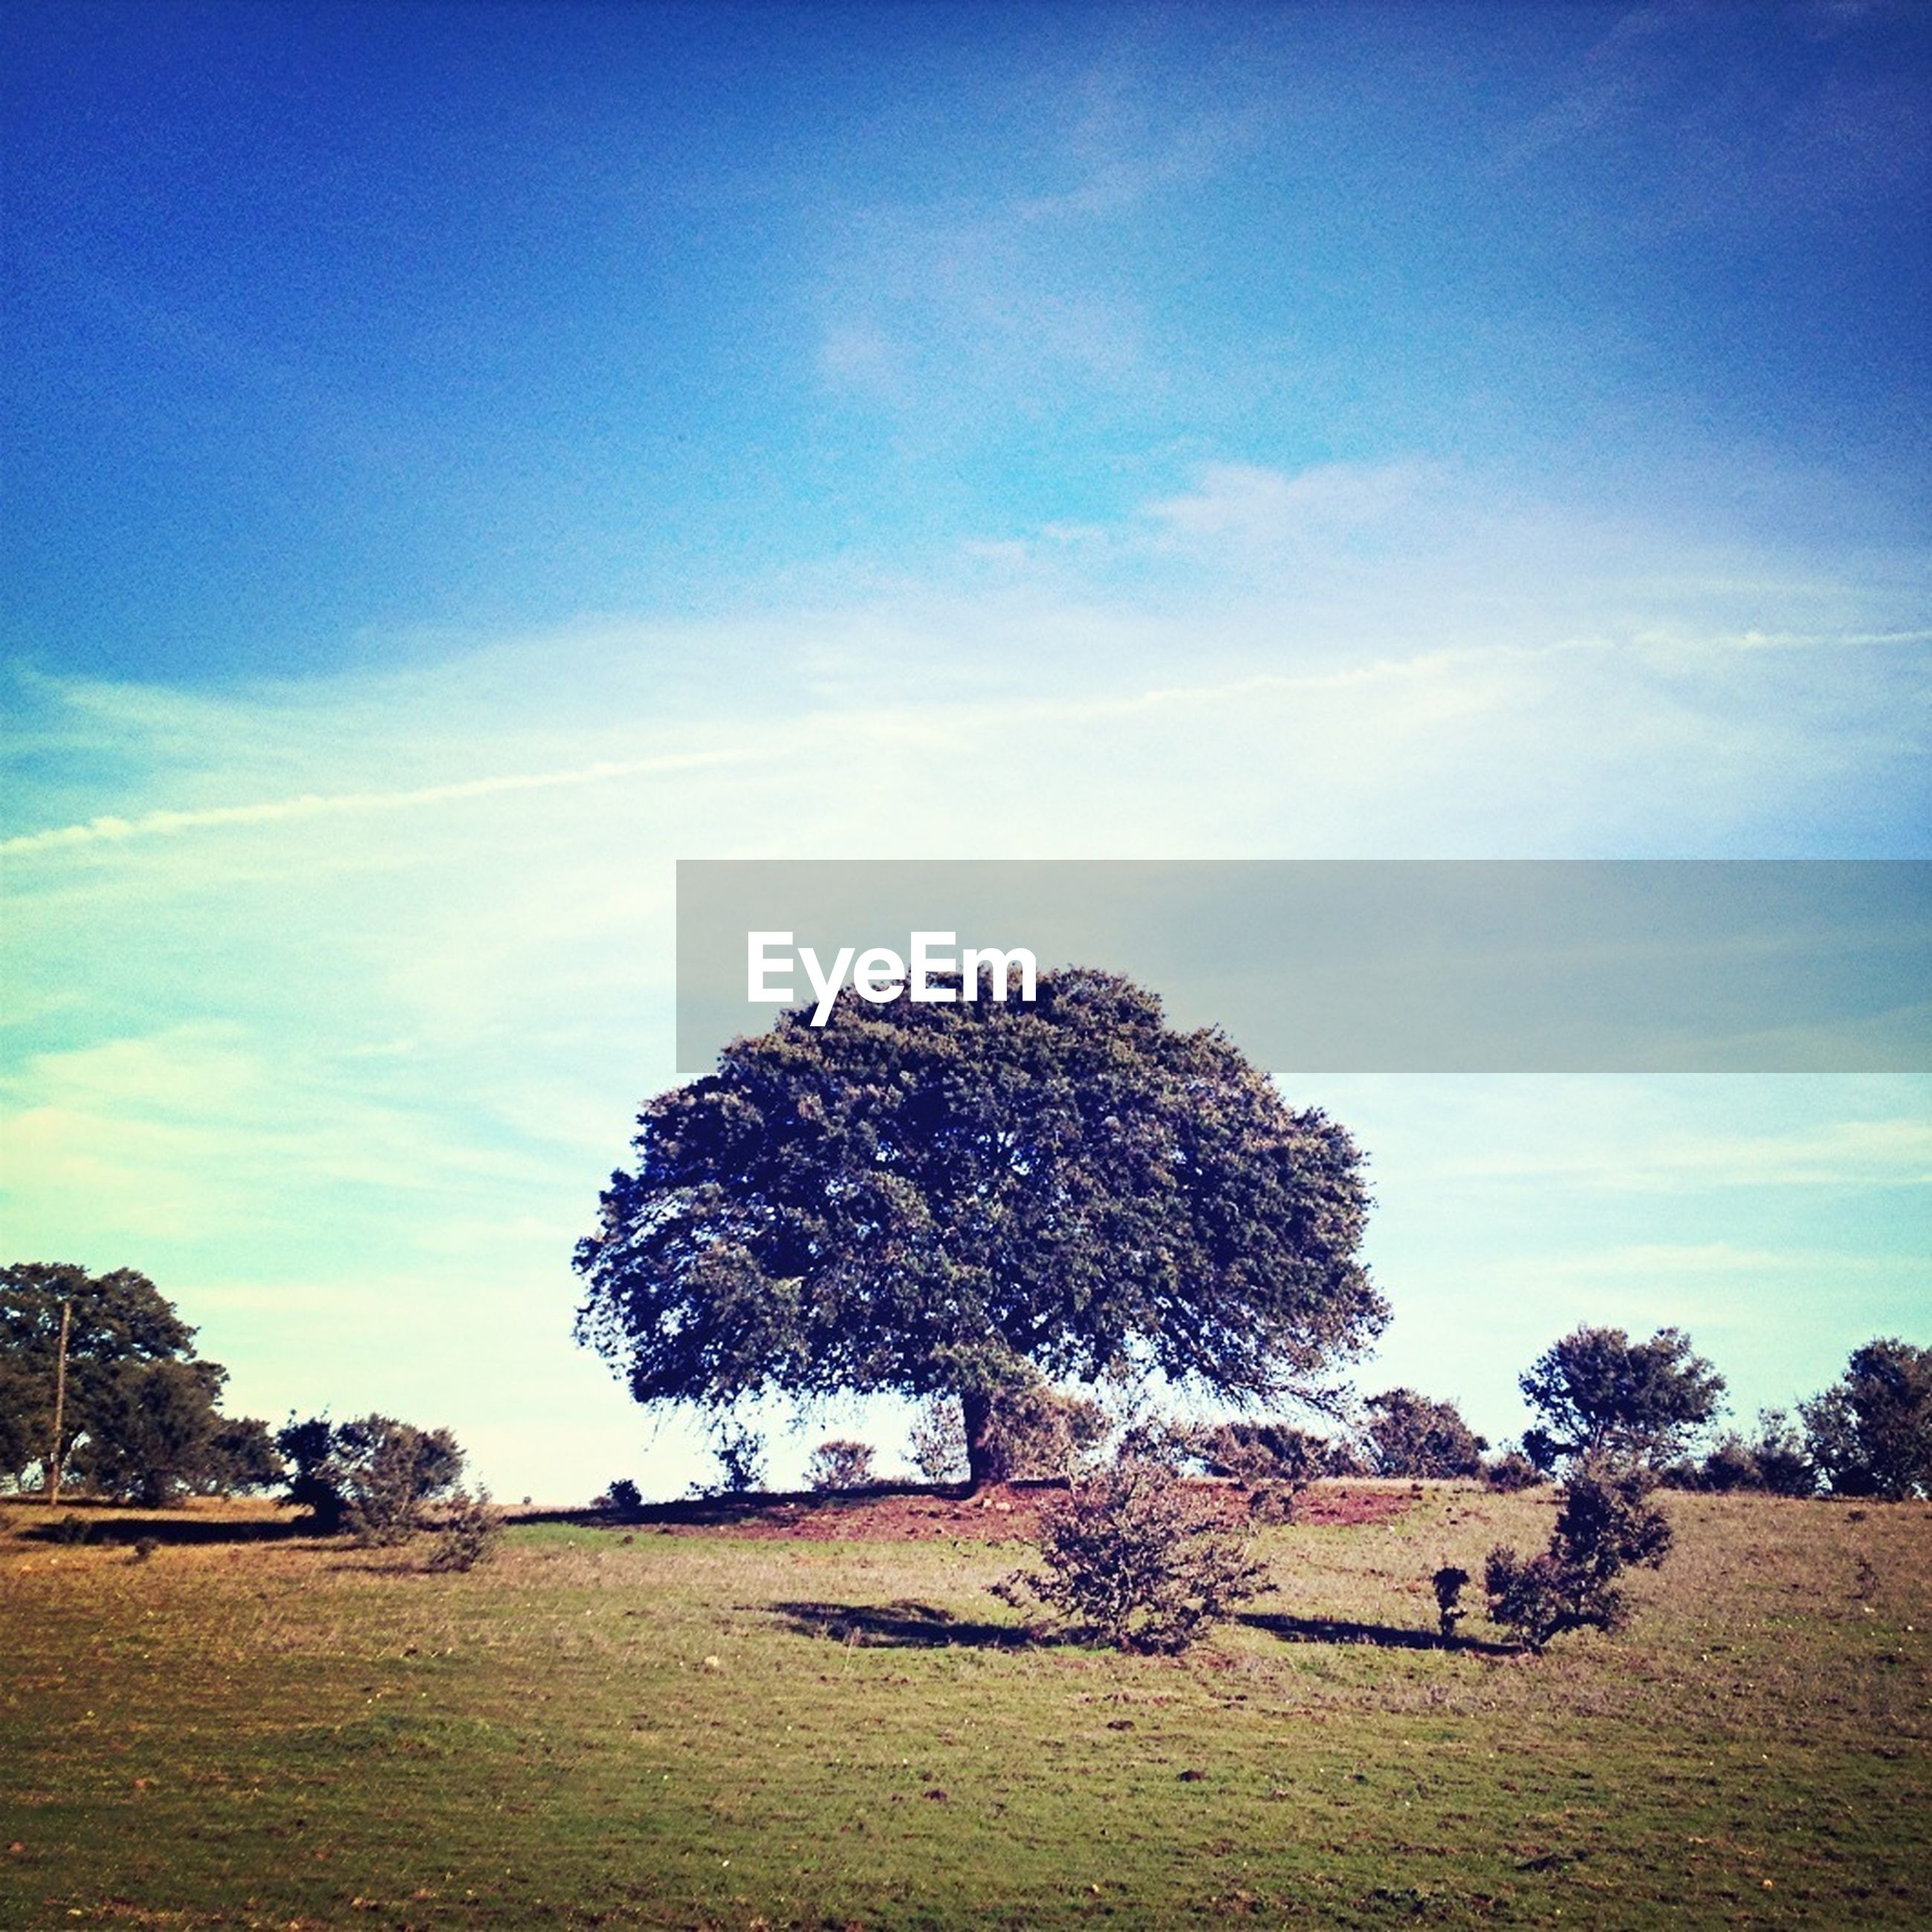 tree, sky, field, blue, landscape, tranquility, tranquil scene, growth, nature, grass, sunlight, beauty in nature, cloud - sky, scenics, day, outdoors, cloud, rural scene, shadow, plant